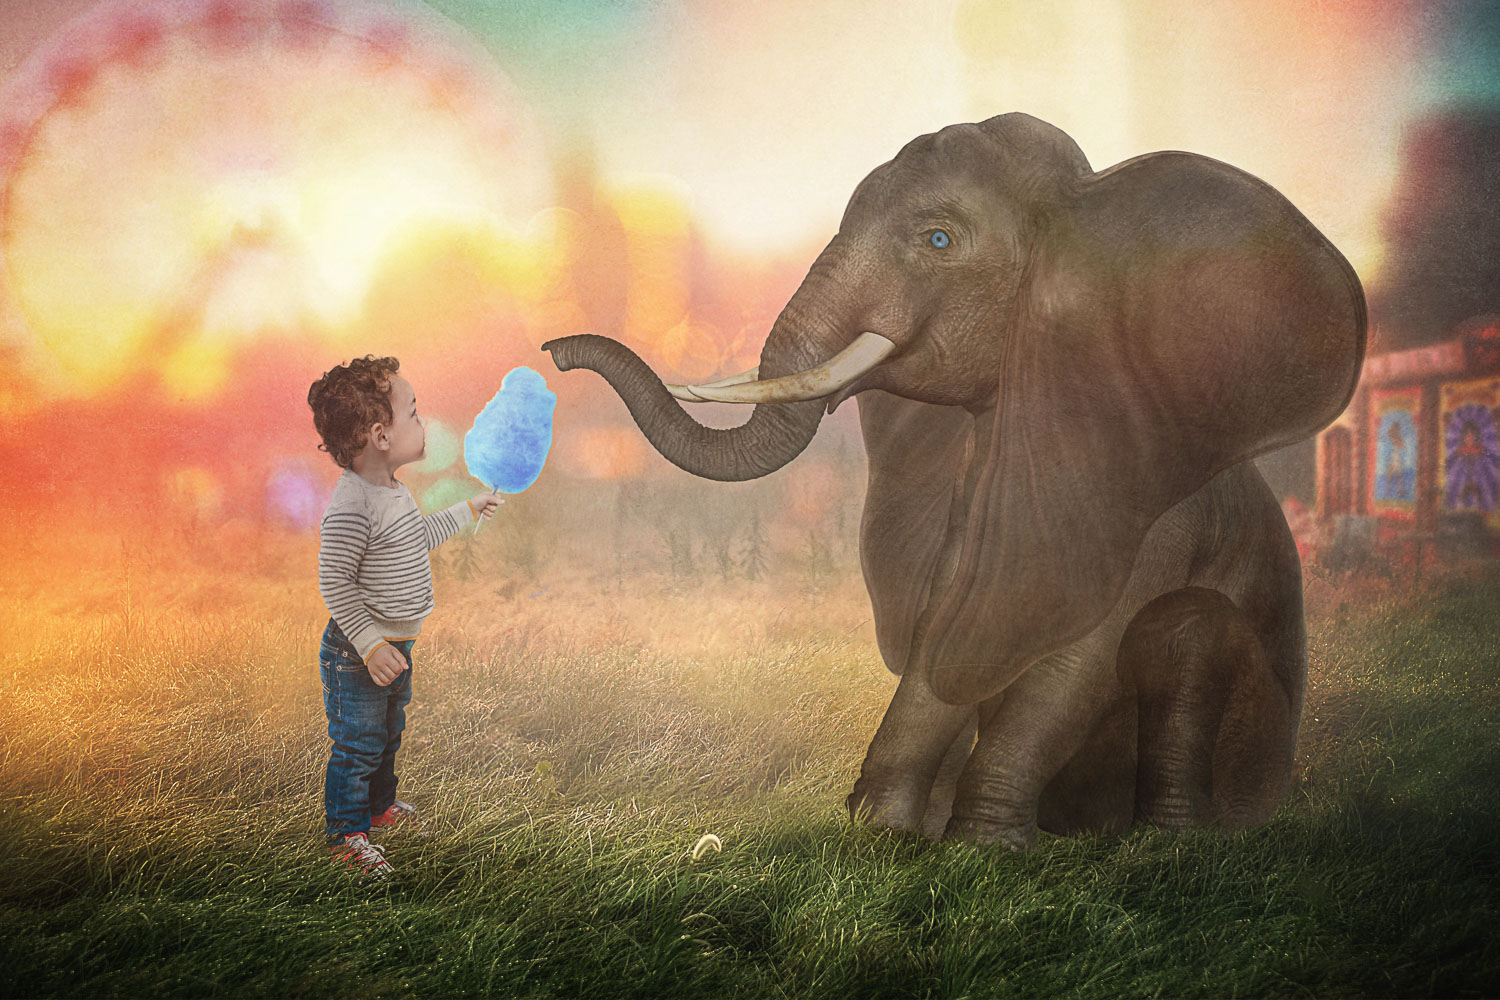 little boy with elephant eating cotton candy storybook composite